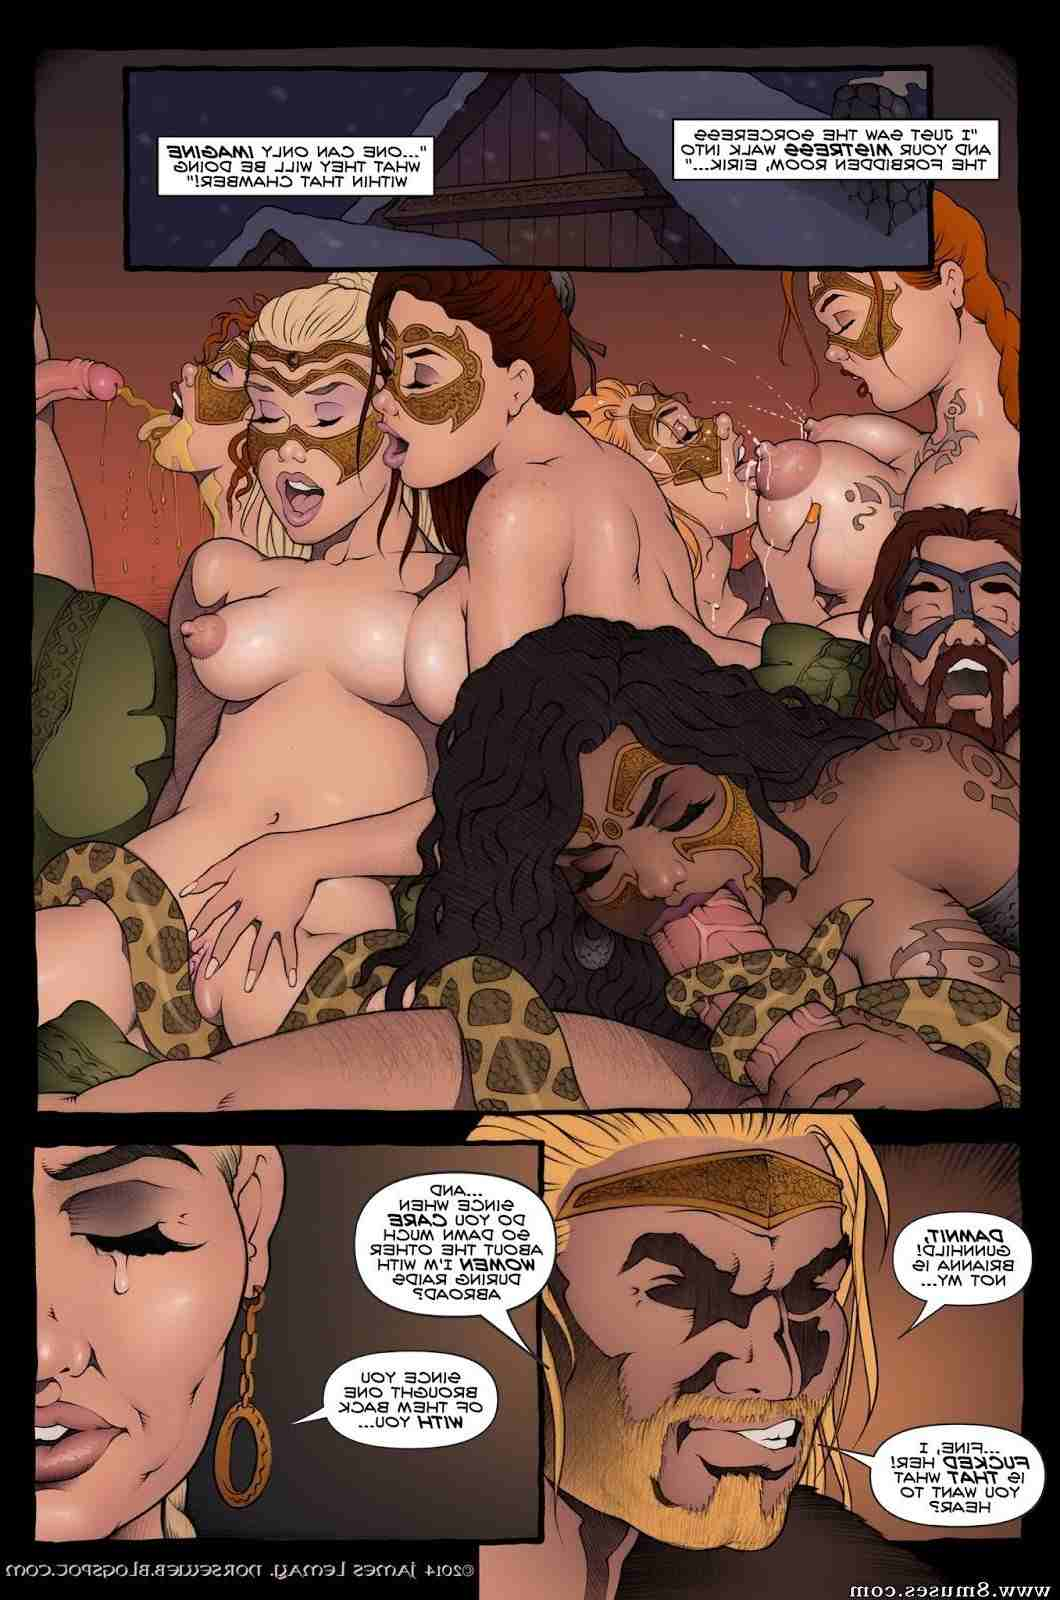 James-Lemay-Comics/Norse-Dawn-of-The-Shield-Maiden Norse_Dawn_of_The_Shield_Maiden__8muses_-_Sex_and_Porn_Comics_85.jpg